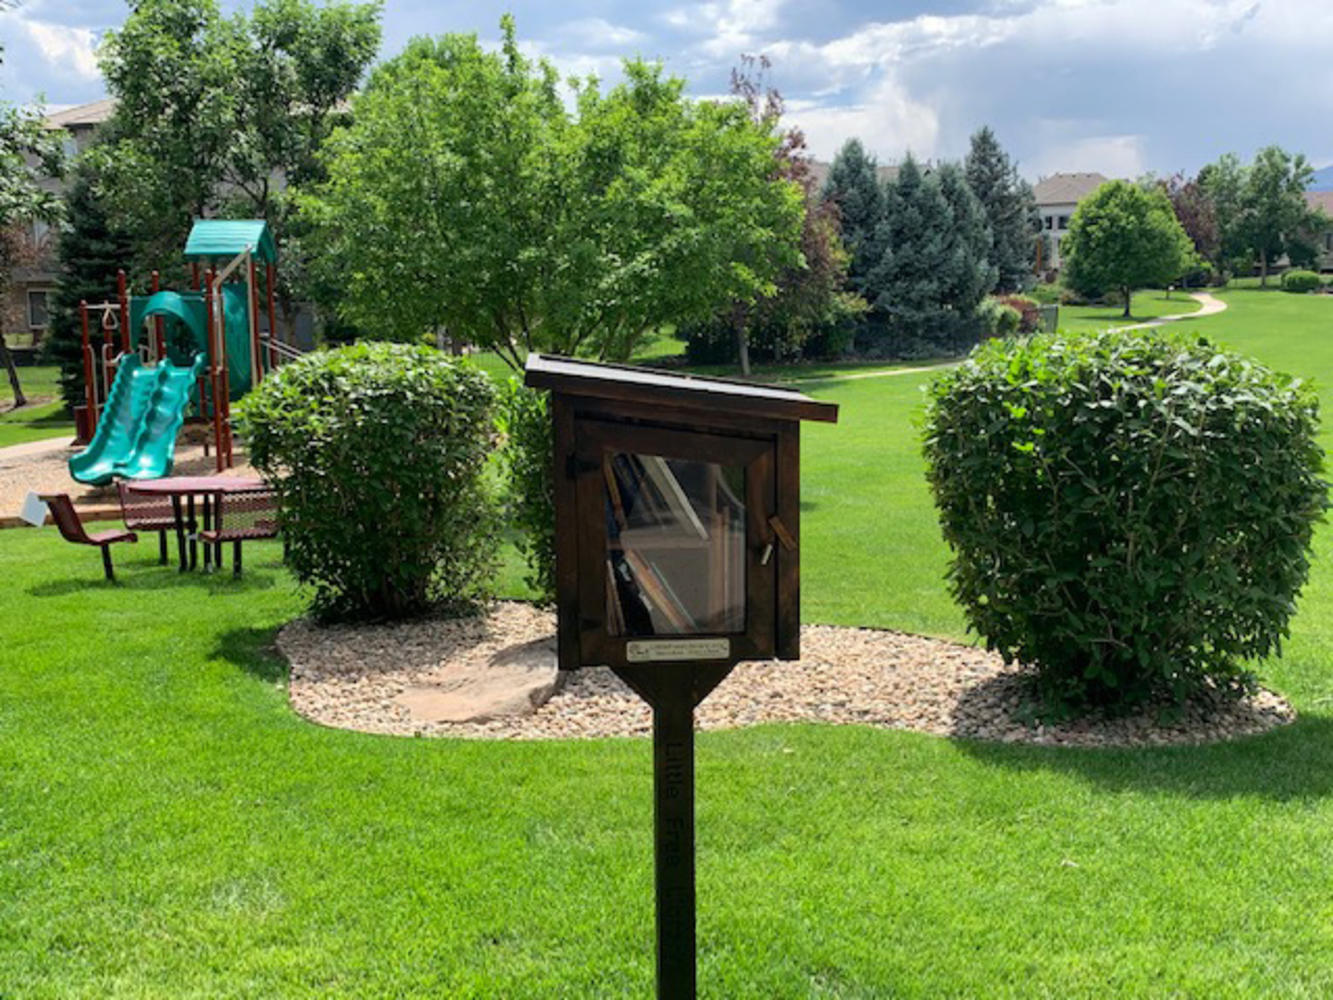 Free Little Library Exchange at Tot Lot